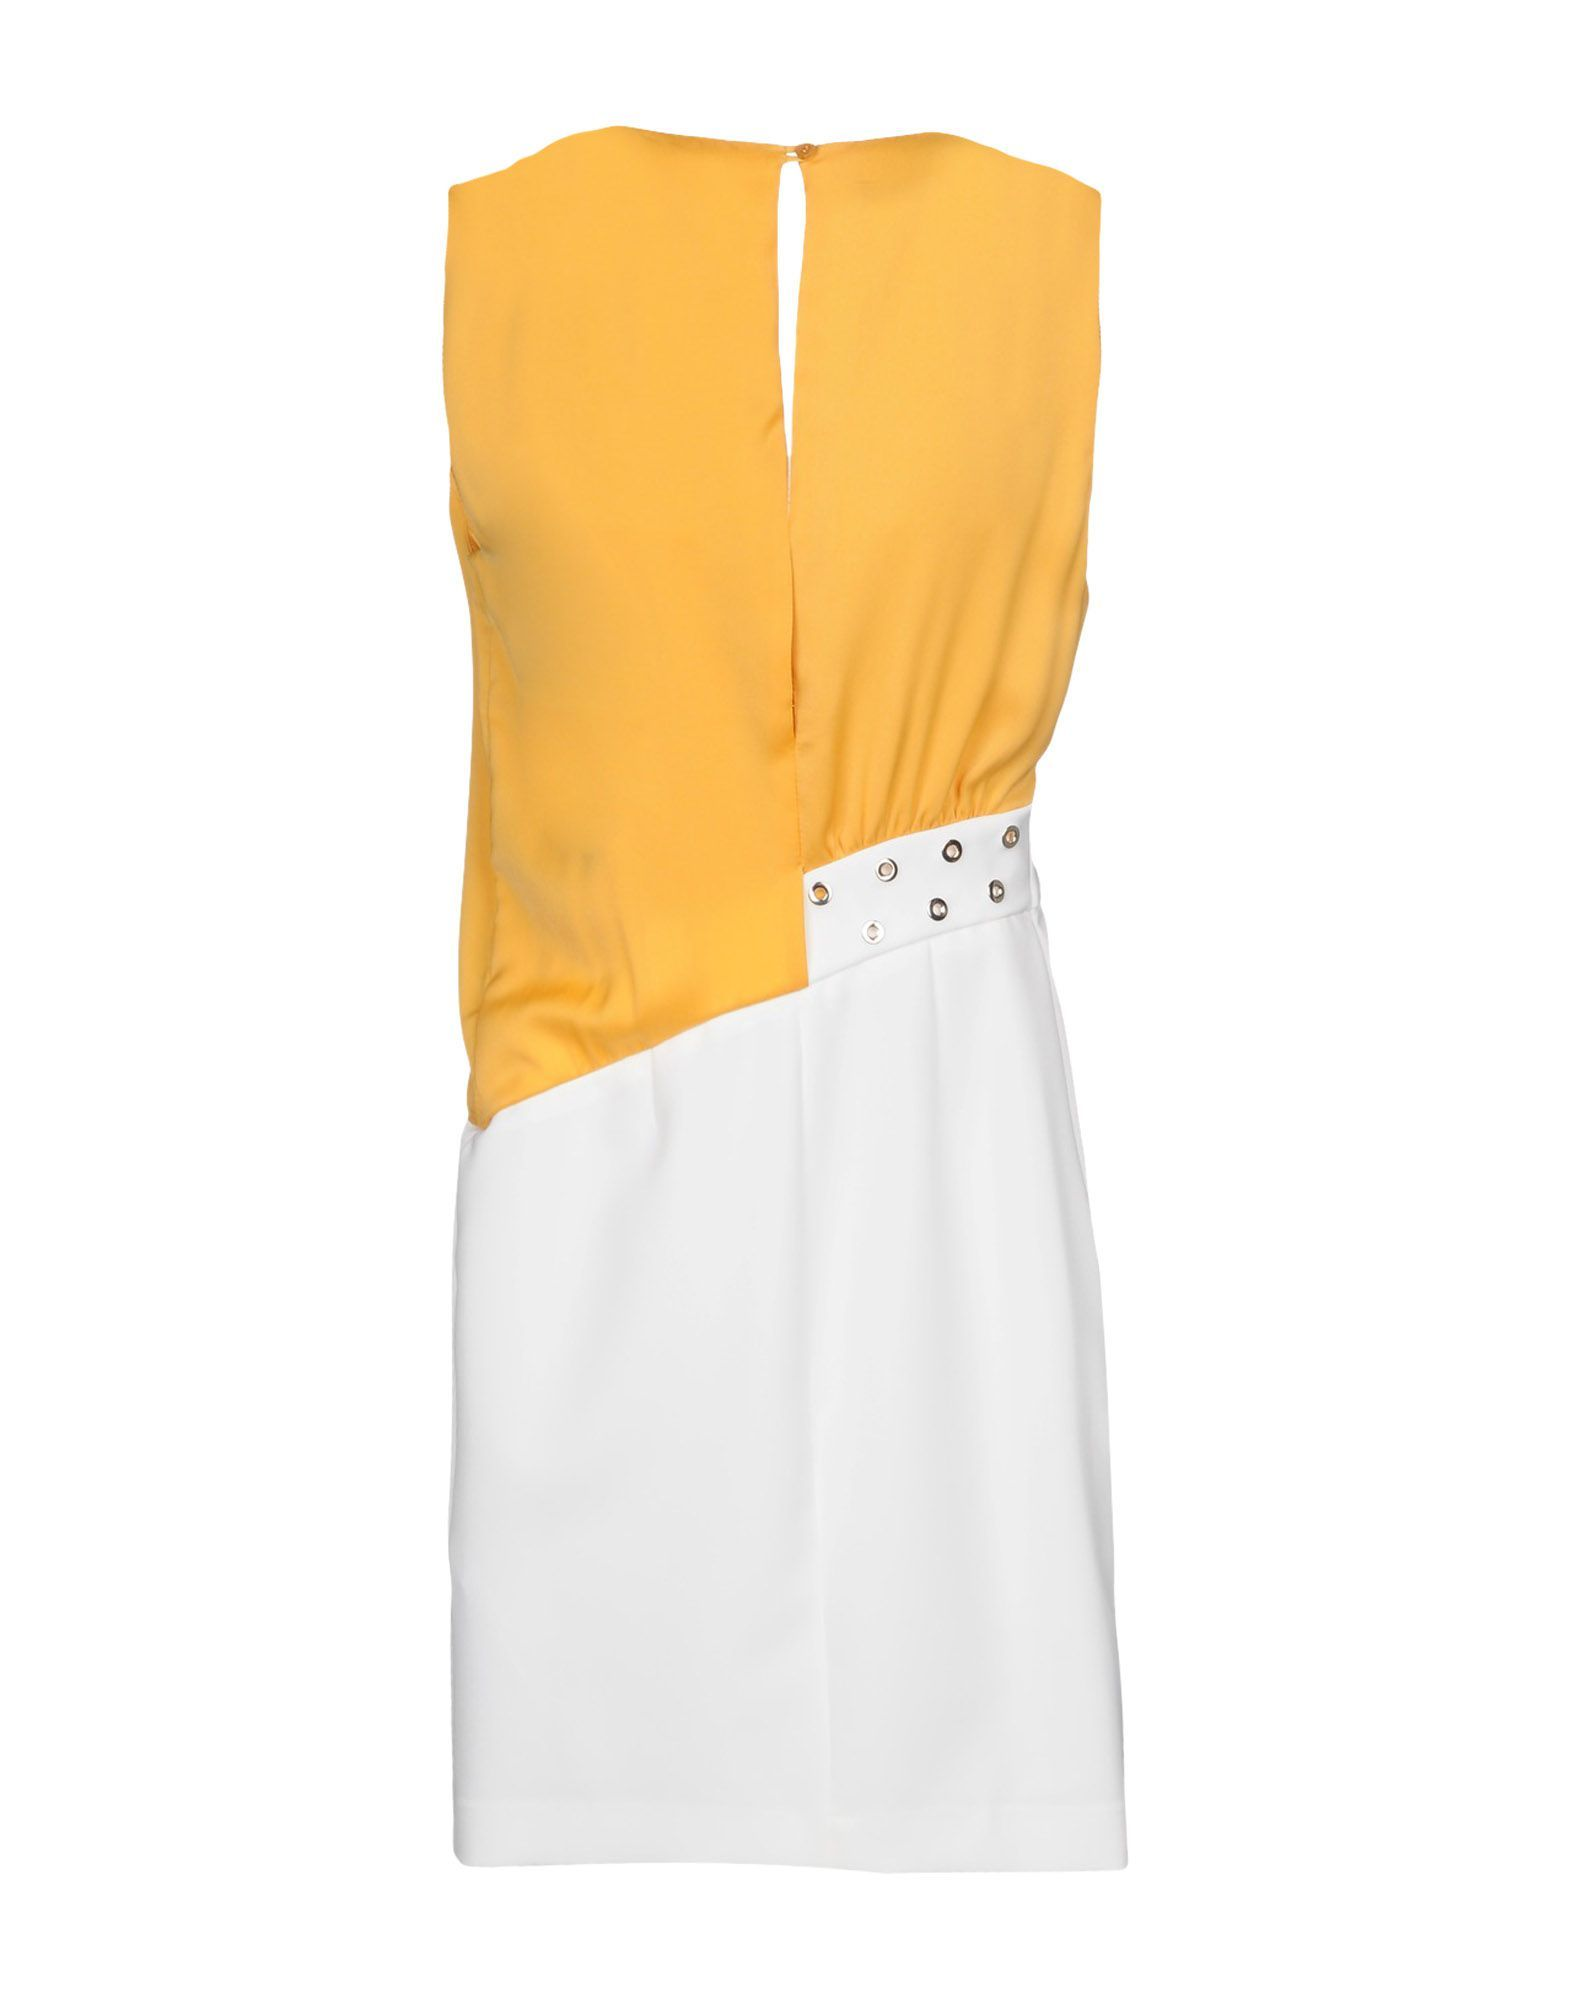 Annarita N Yellow Contrast Pencil Style Dress